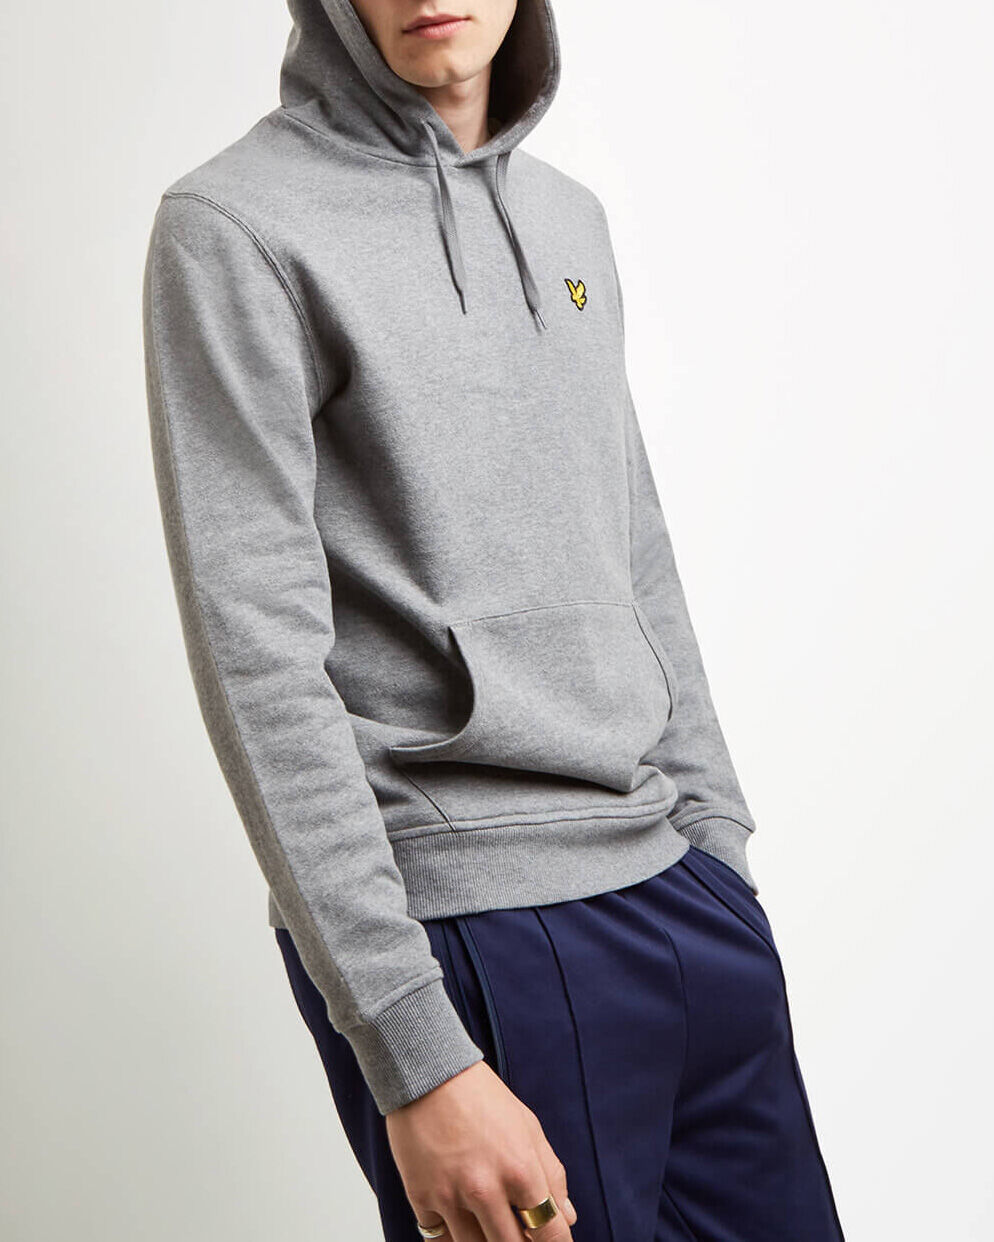 Lyle-and-Scott-Mens-Pullover-Hoodie-Cotton thumbnail 32